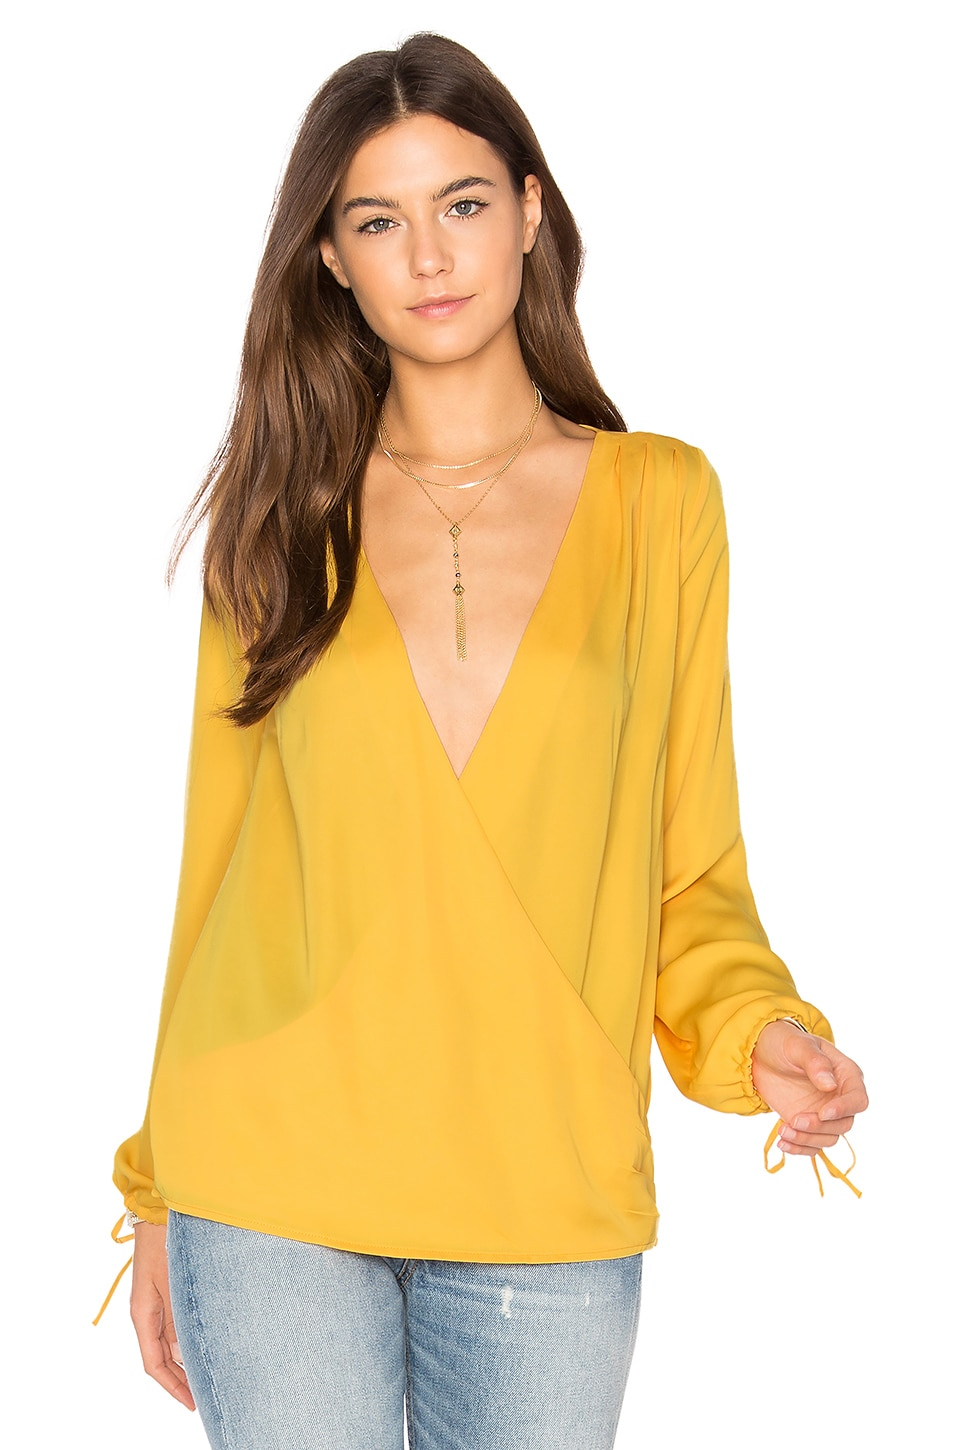 L'Academie The Long Sleeve Wrap Blouse in Marigold